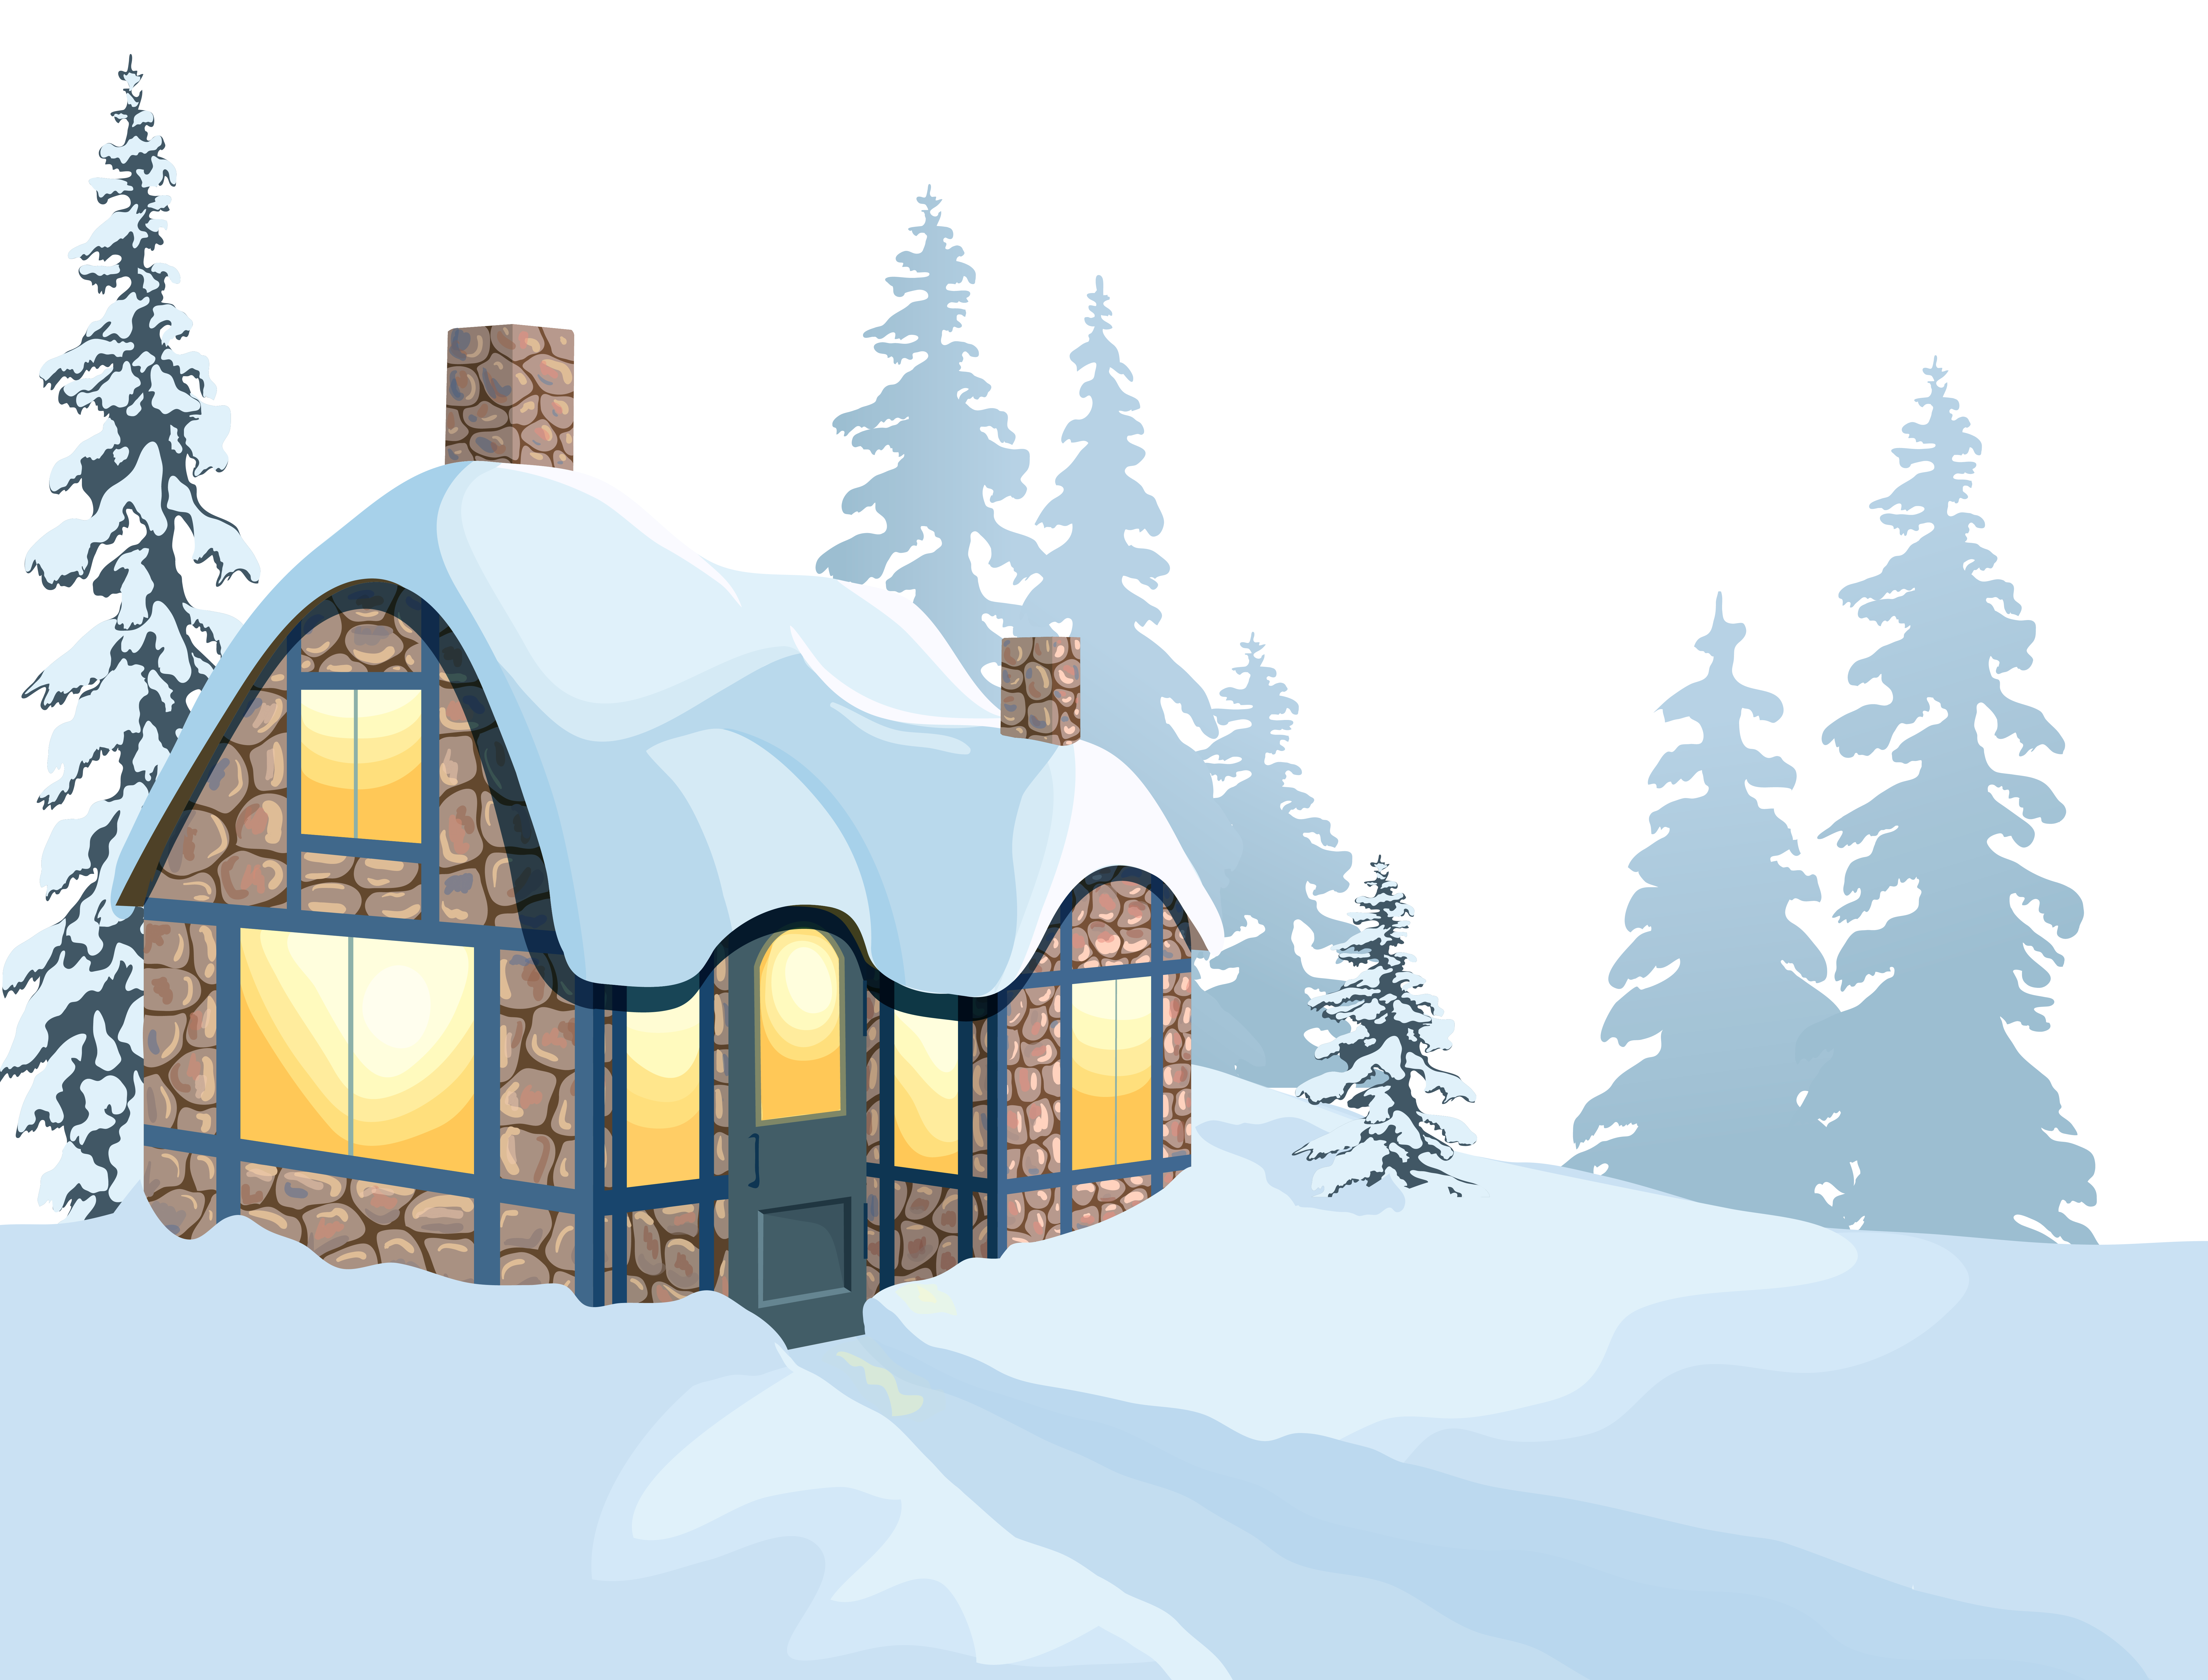 Free winter snowfall clipart png. House and snow image